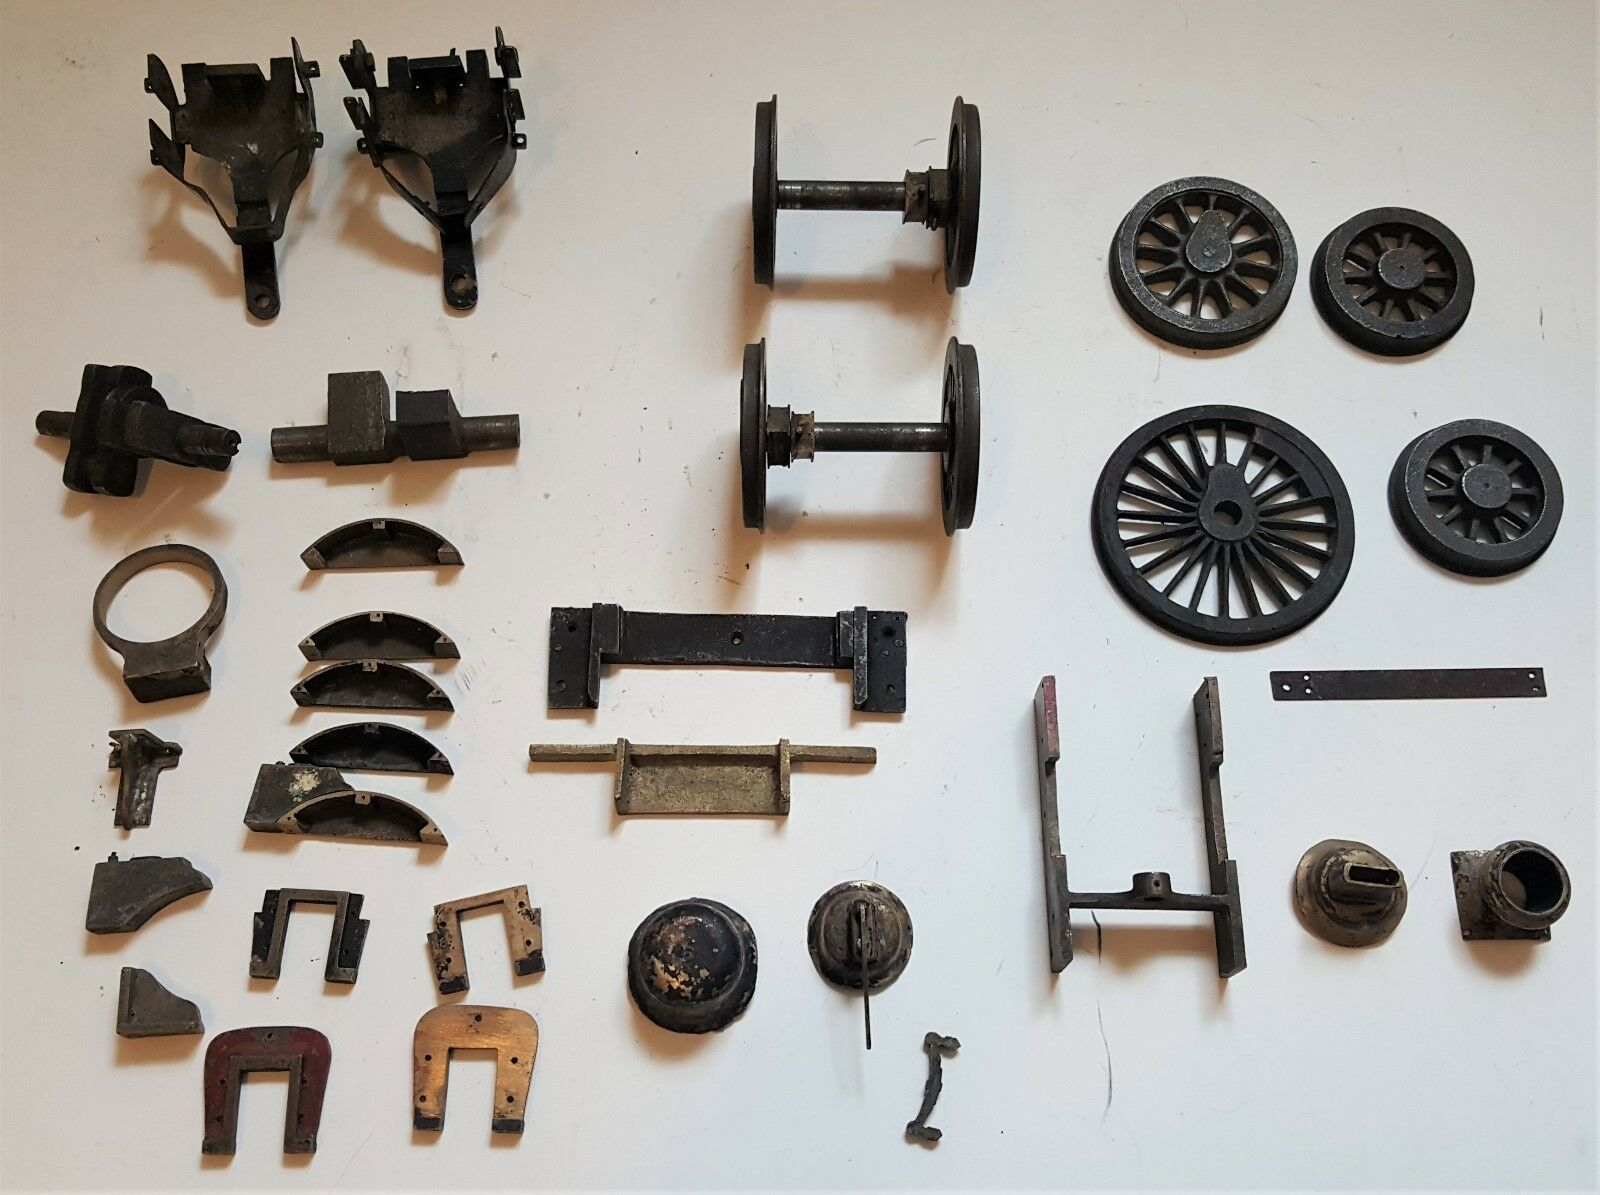 Bassett Lowke Steam locomotive parts 3.25 inch gauge